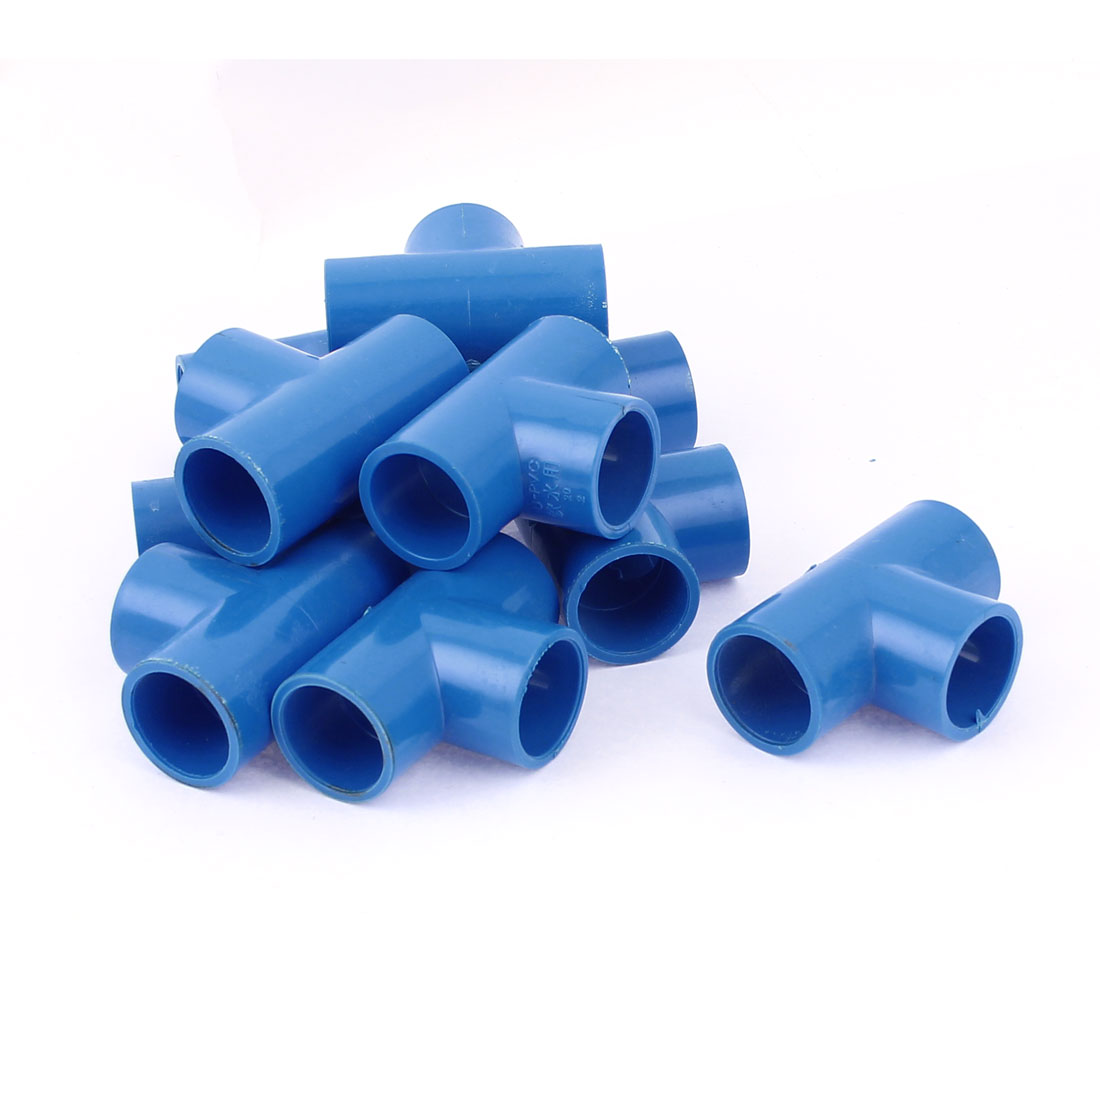 10Pcs 20mm Inner Dia U-PVC T Type 3 Way Water Pipe Hose Joint Connector Blue